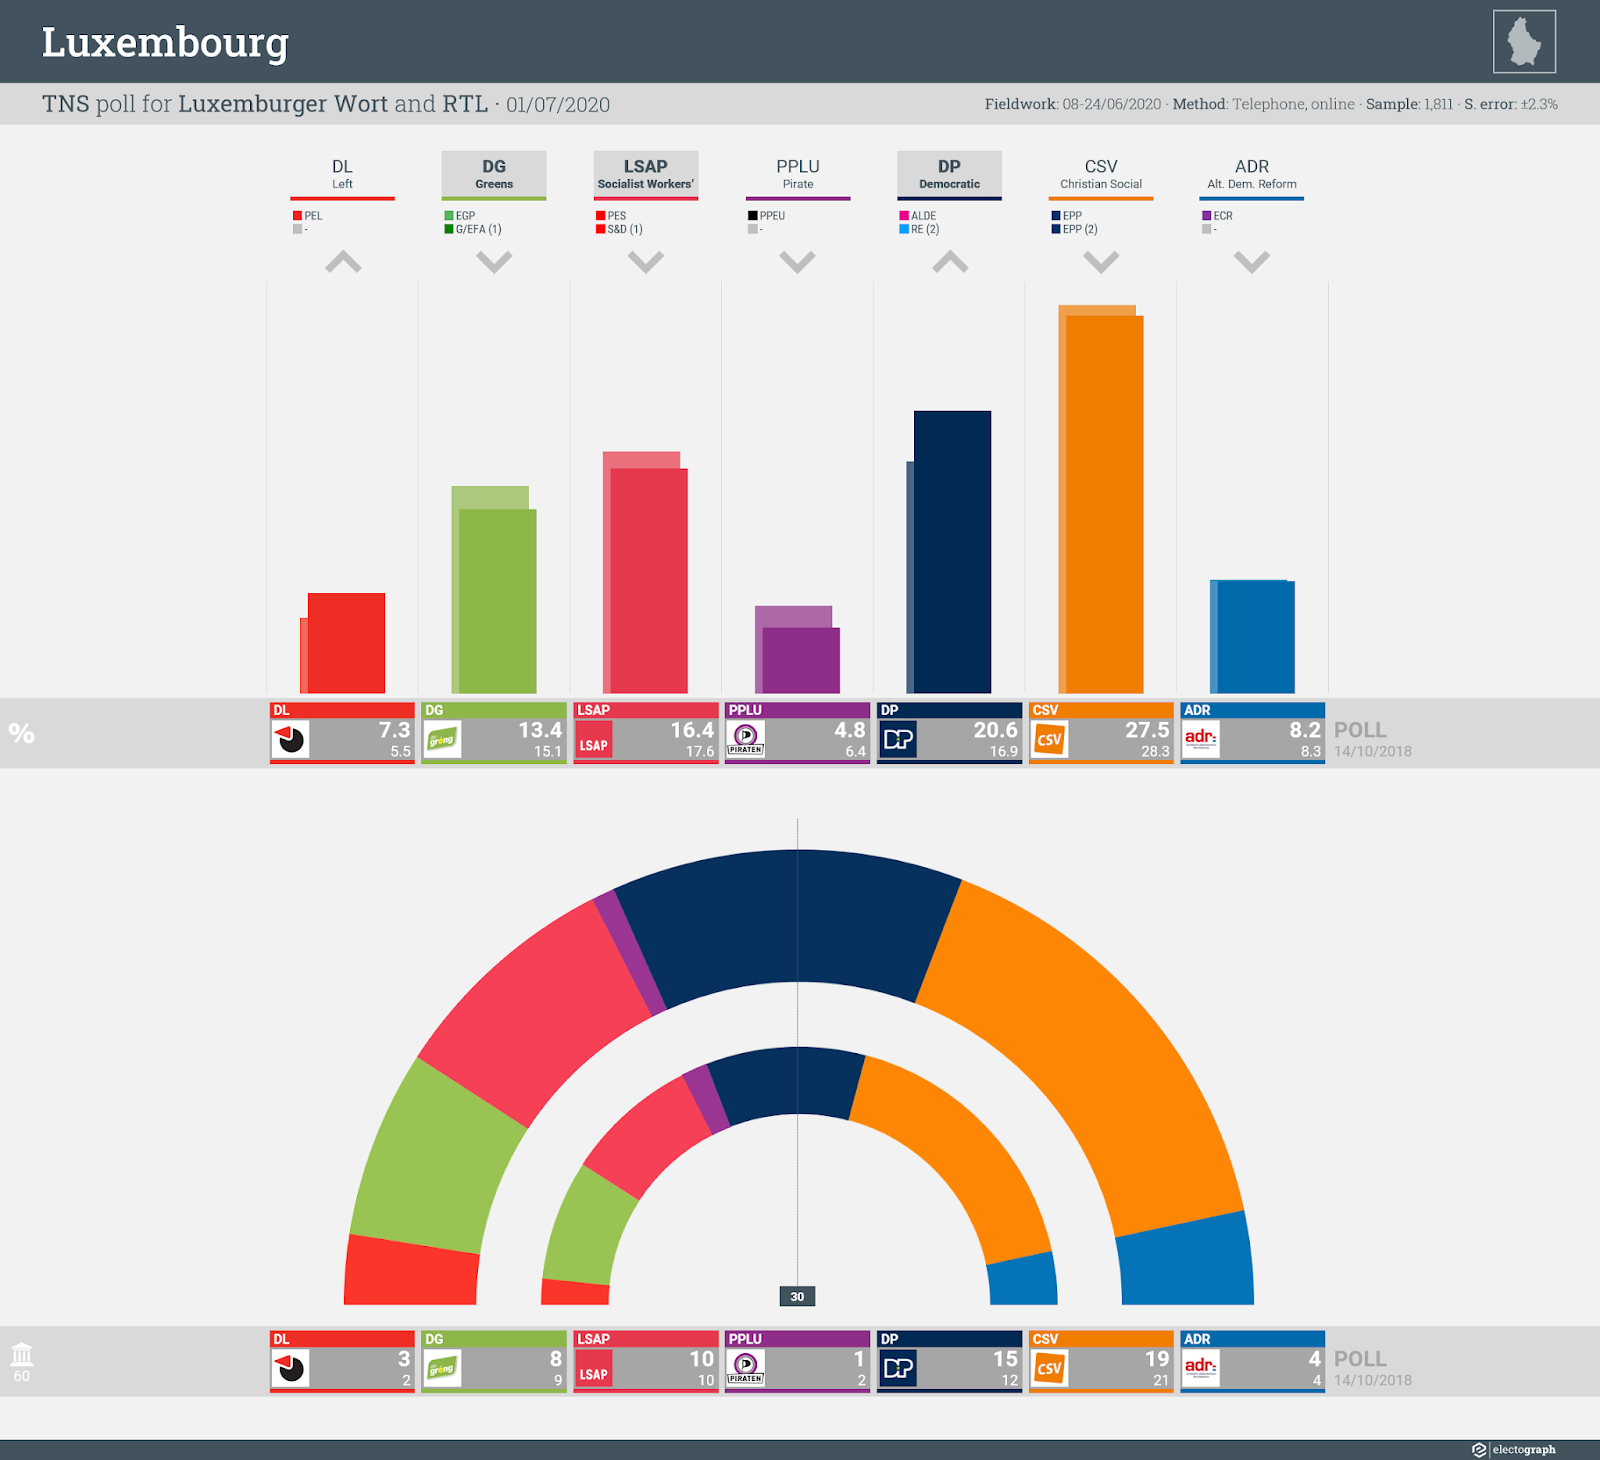 LUXEMBOURG: TNS poll chart for Luxemburger Wort and RTL, 1 July 2020